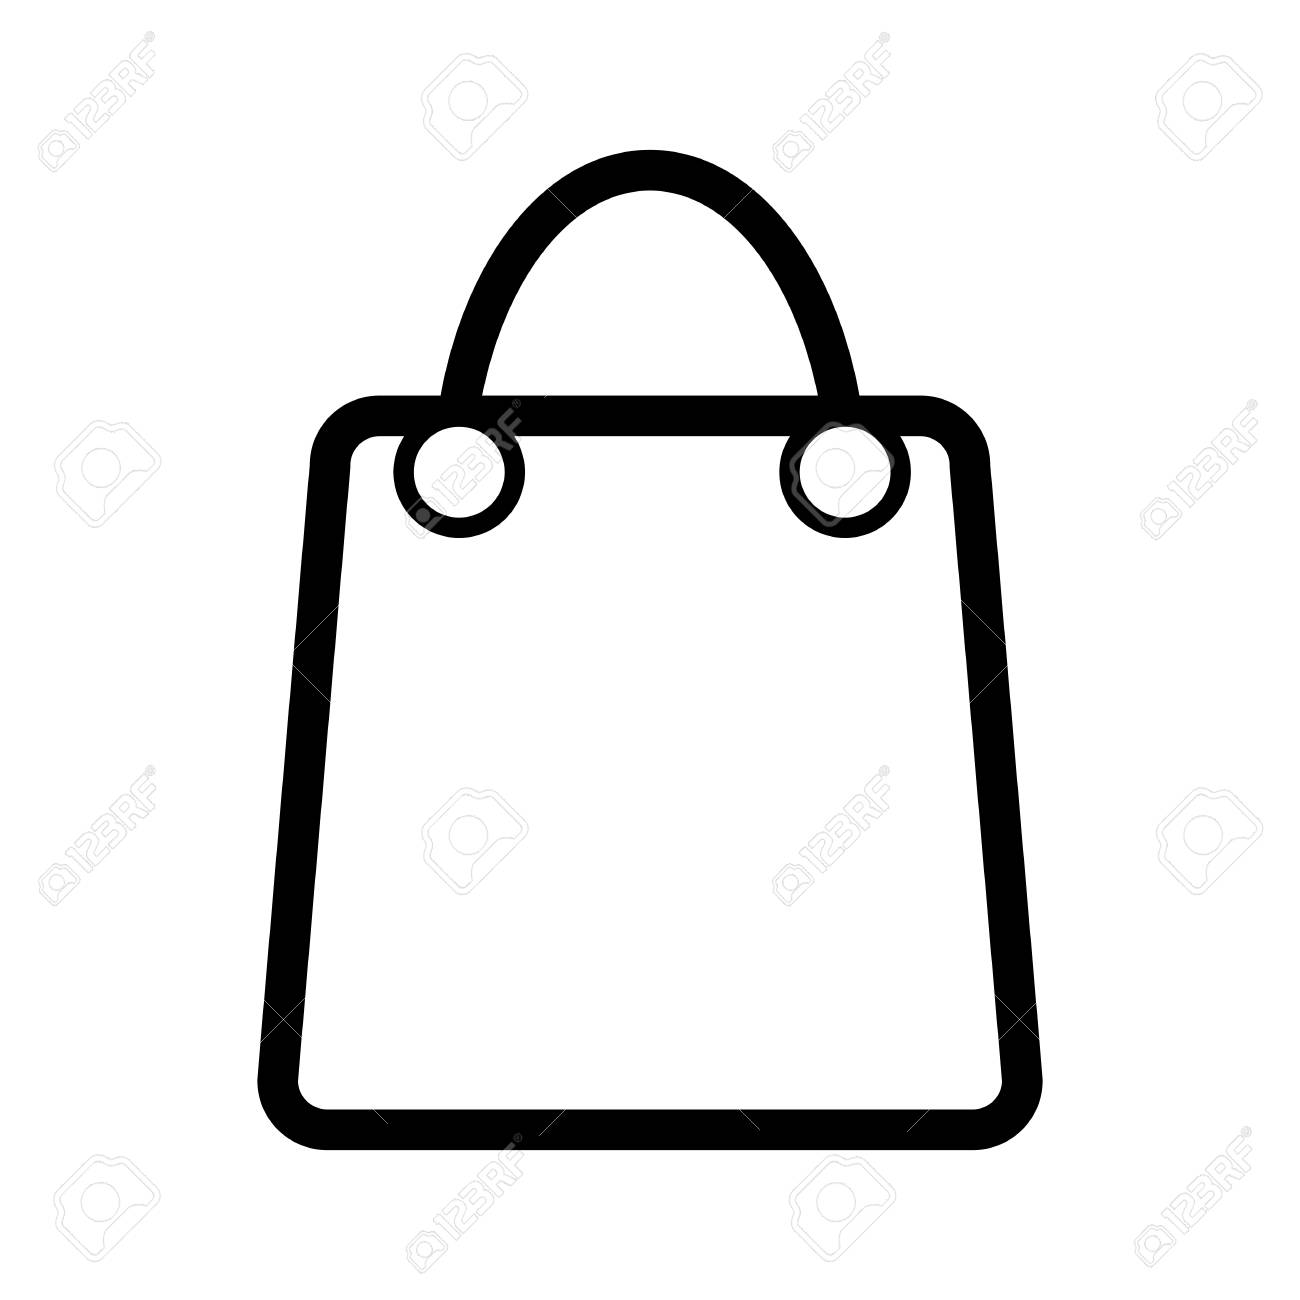 shopping bag vector icon black and white bag illustration with rh 123rf com bag vector icon bag vector free download